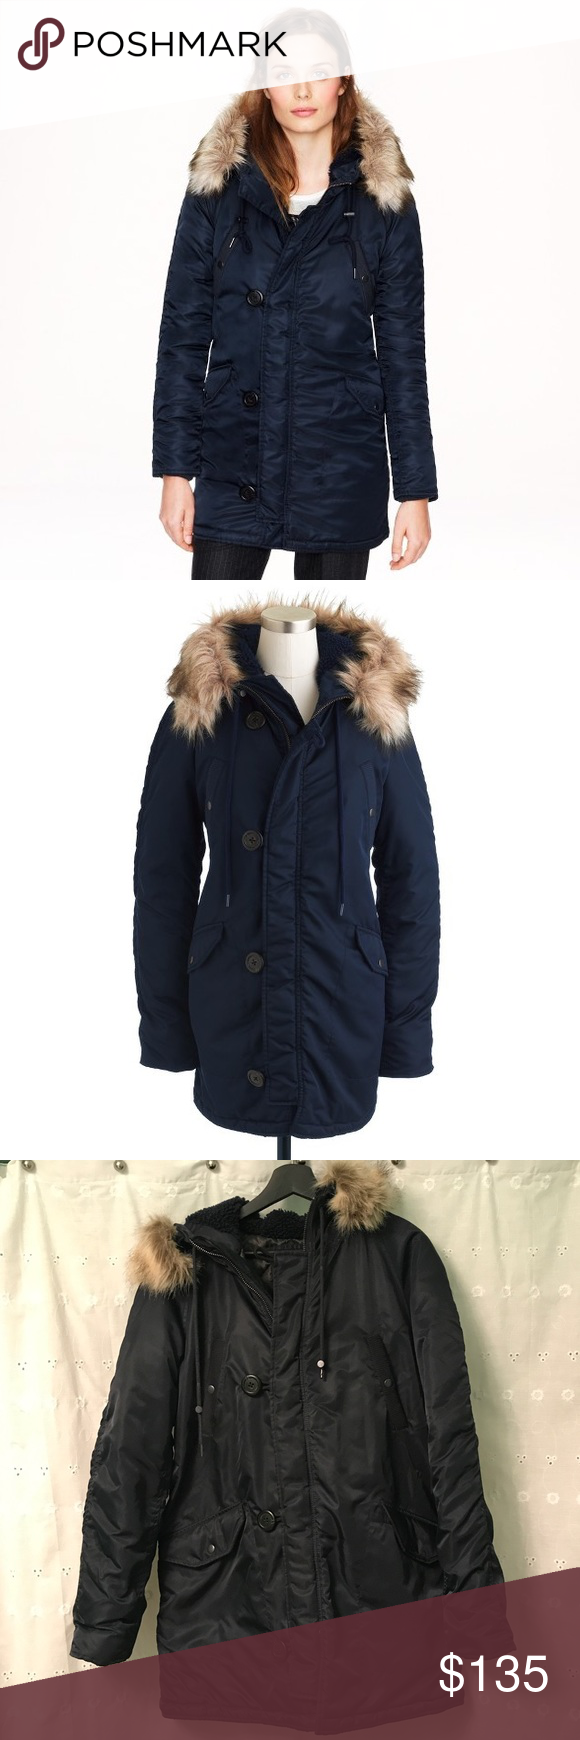 J. Crew Navy Blue Military Parka Coat Beautiful navy blue military ...